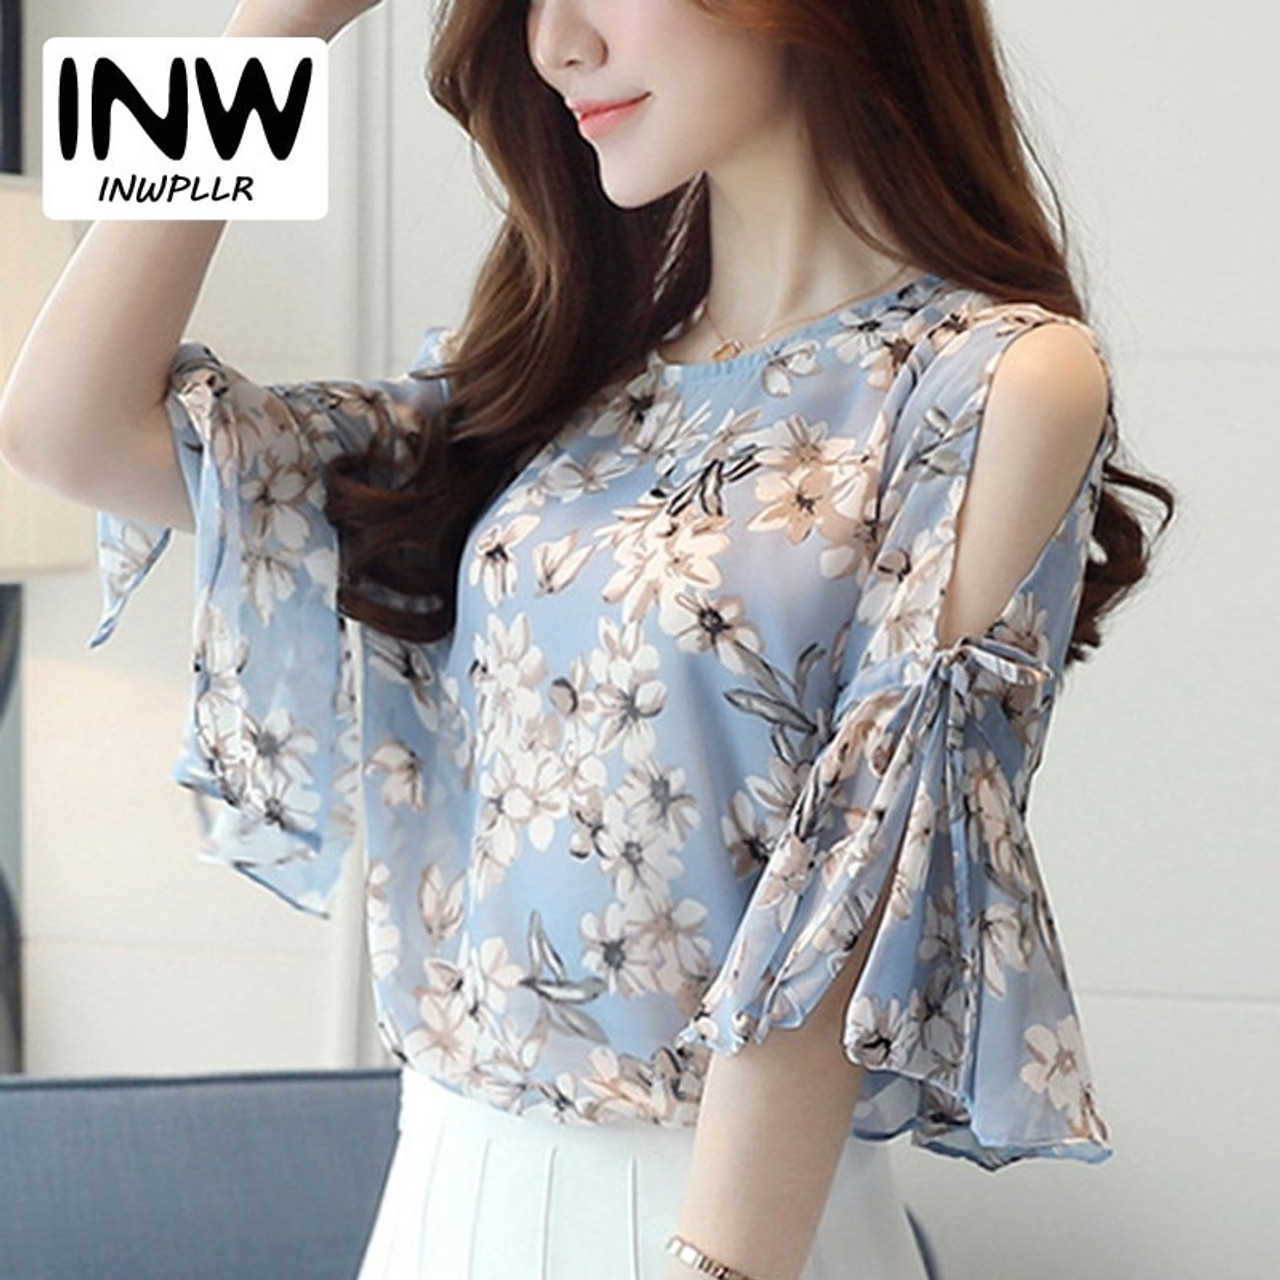 6396dc8653a 2018 Chiffon Floral Print Blouses For Women Ladies Fashion O-Neck Flare  Sleeve Blusas Tops ...